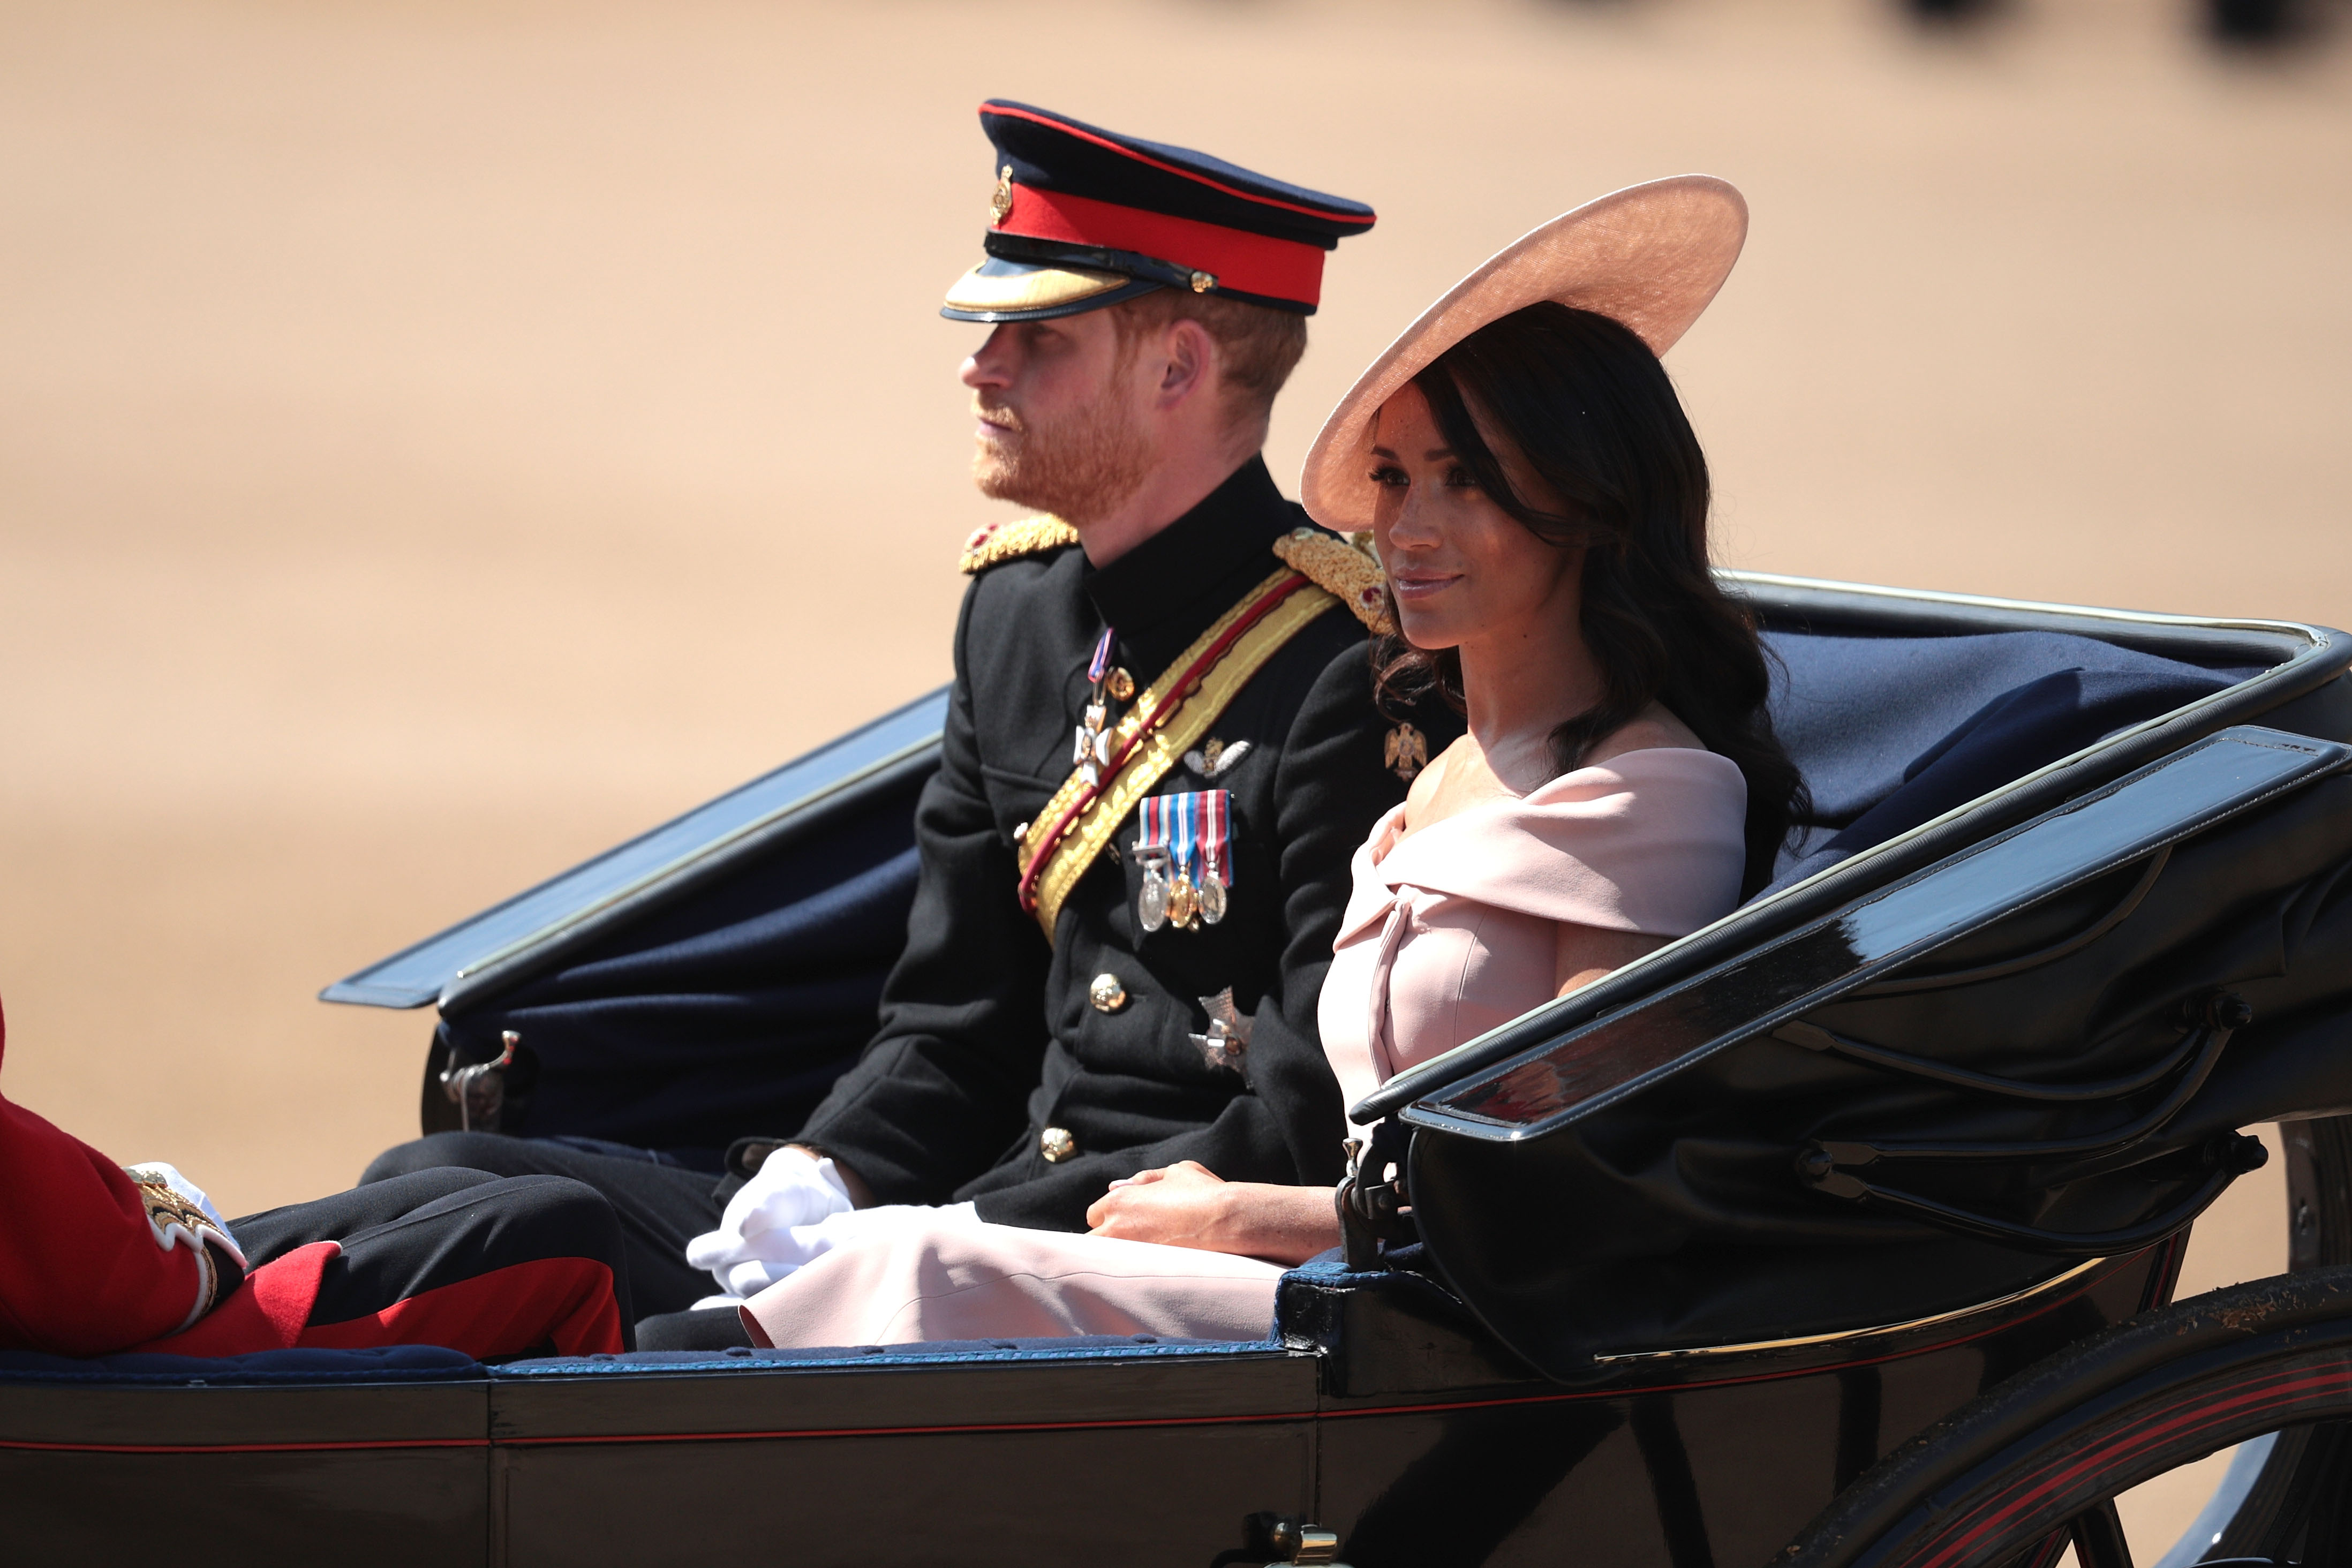 Prince Harry, Duke of Sussex, and Meghan Markle, Duchess of Sussex, arrive at The Royal Horseguards during Trooping the Colour ceremony on June 9, 2018 in London, England